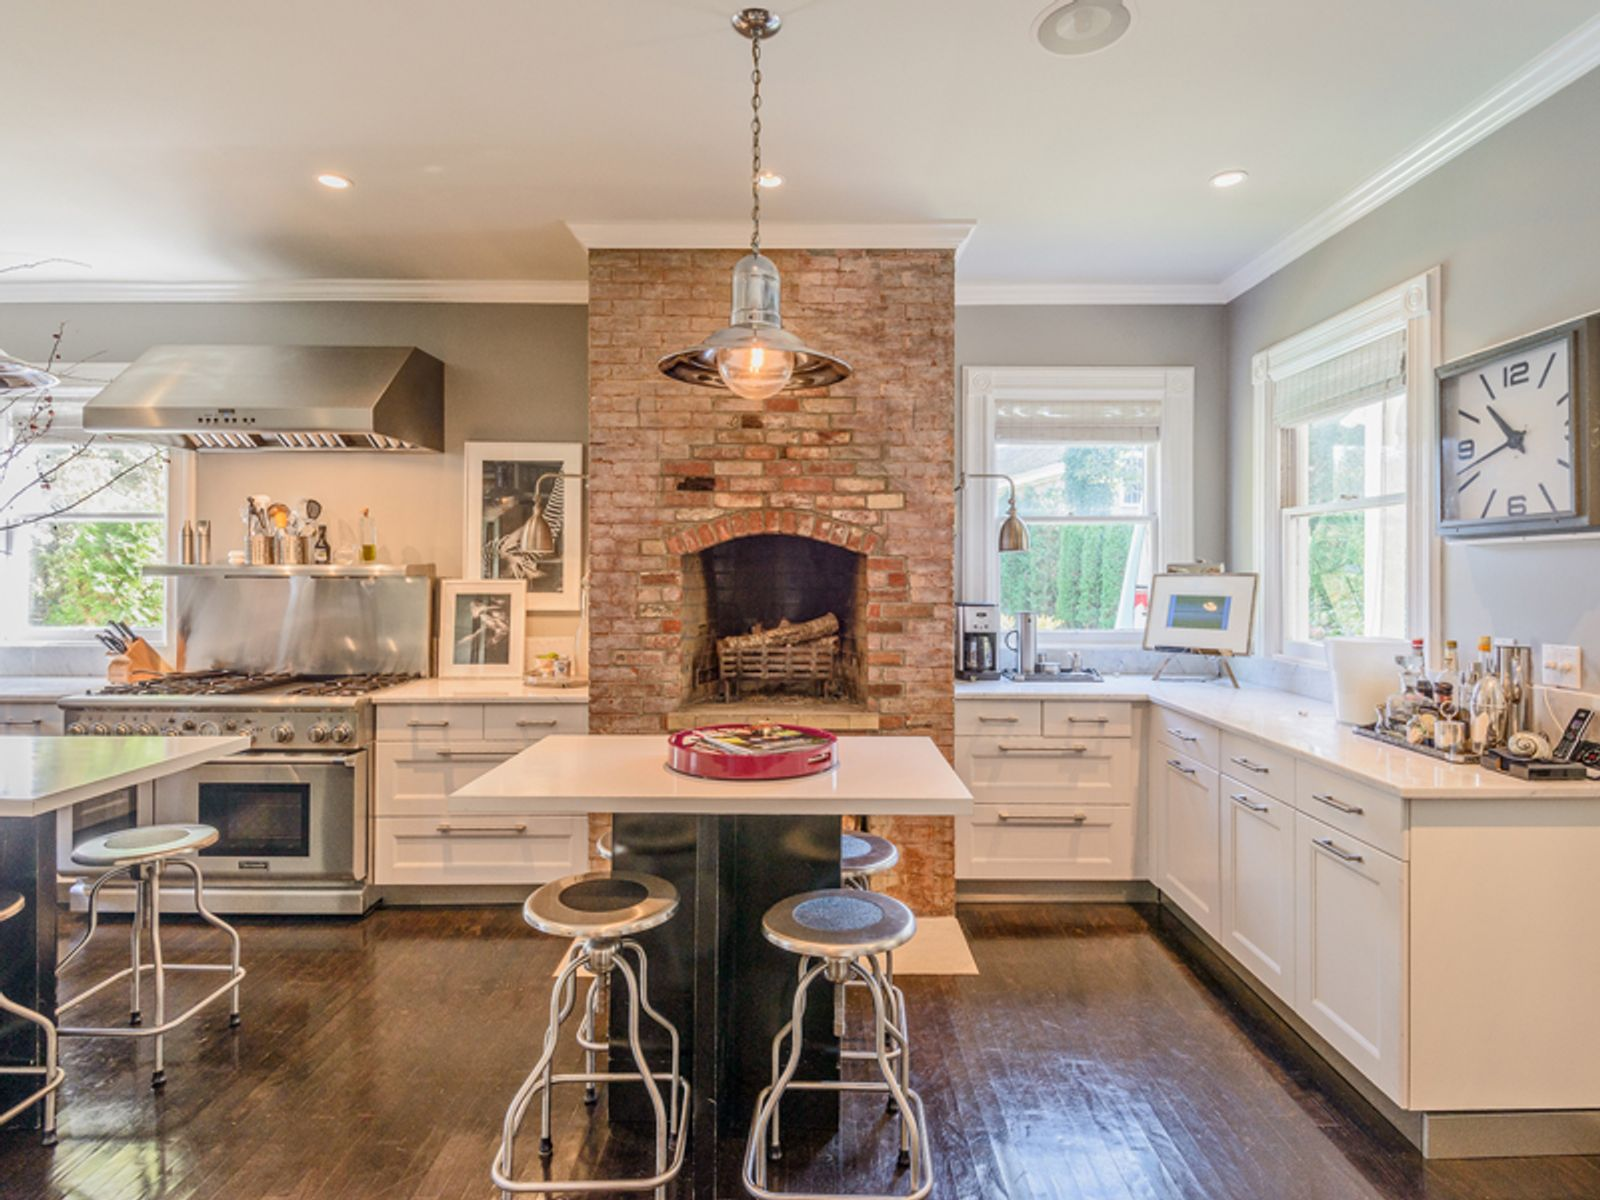 Stylish Renovation – Village Victorian